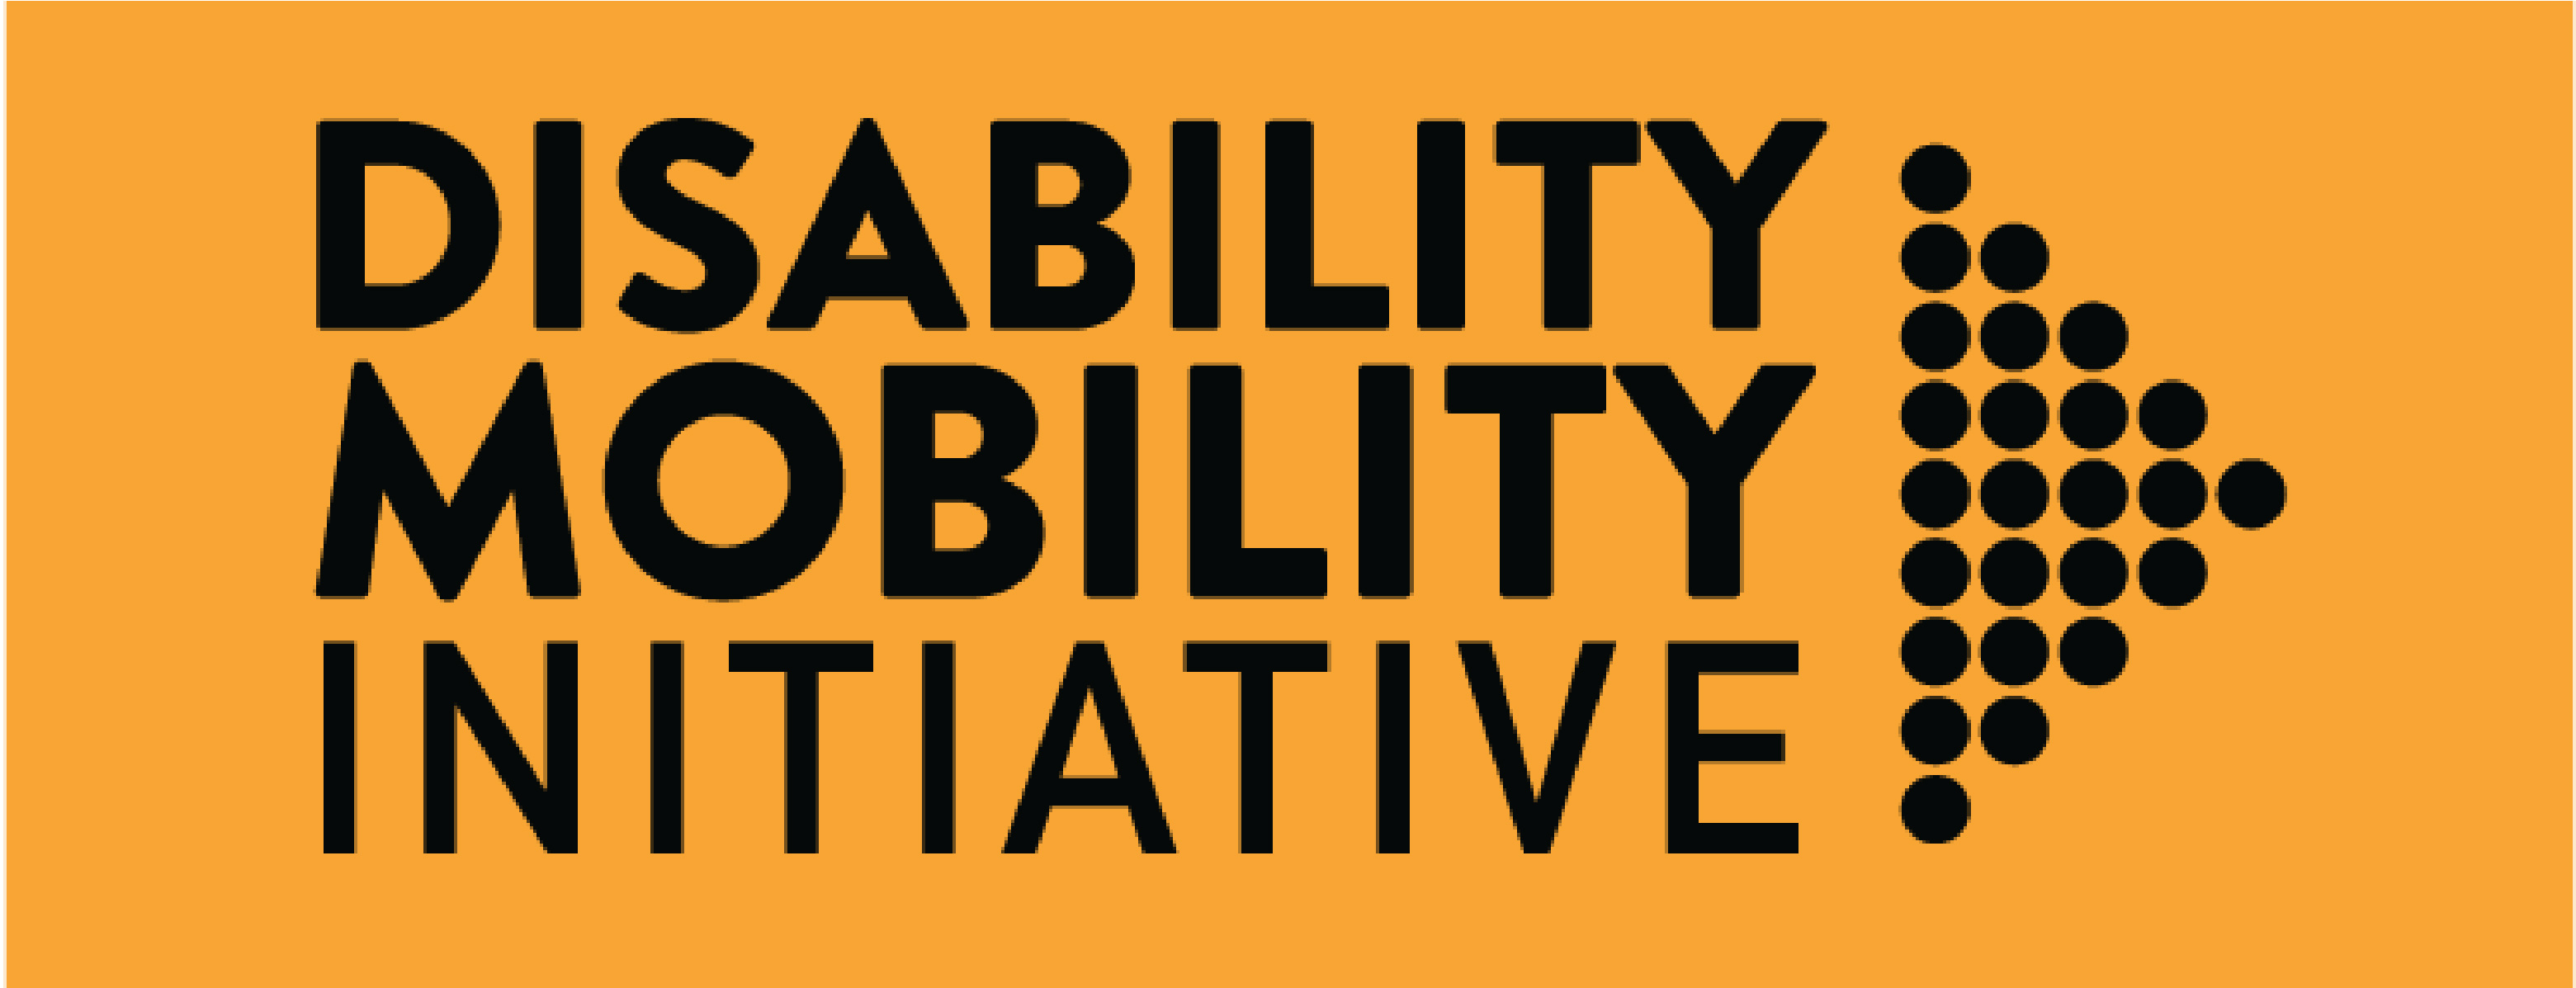 """Orange background with text in black that says, """"Disability Mobility Initiative"""" and an arrow to the right of the text."""